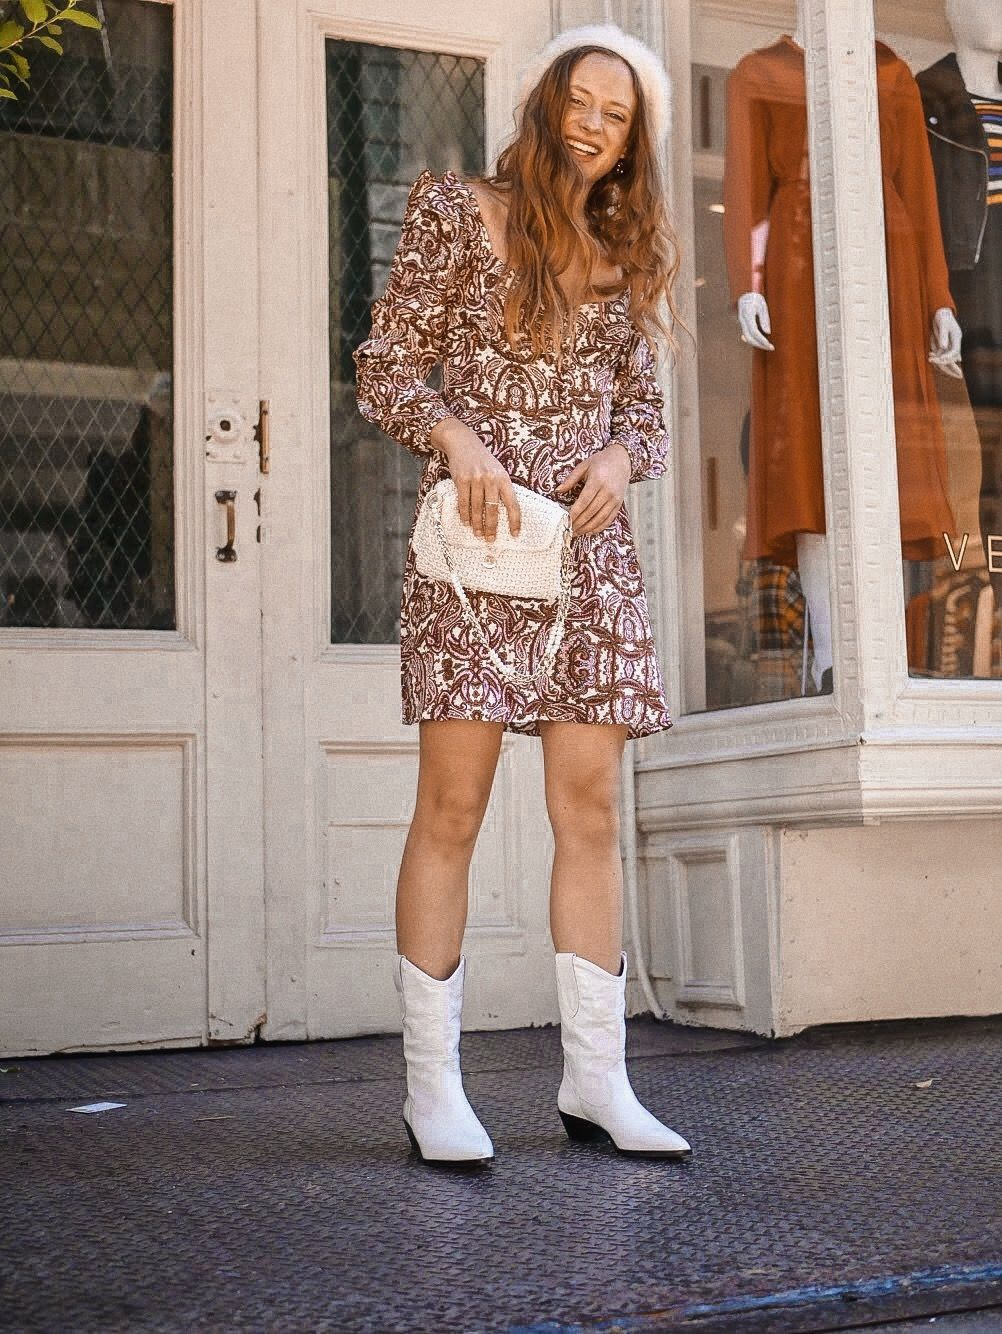 white cowboy boots look ~insta